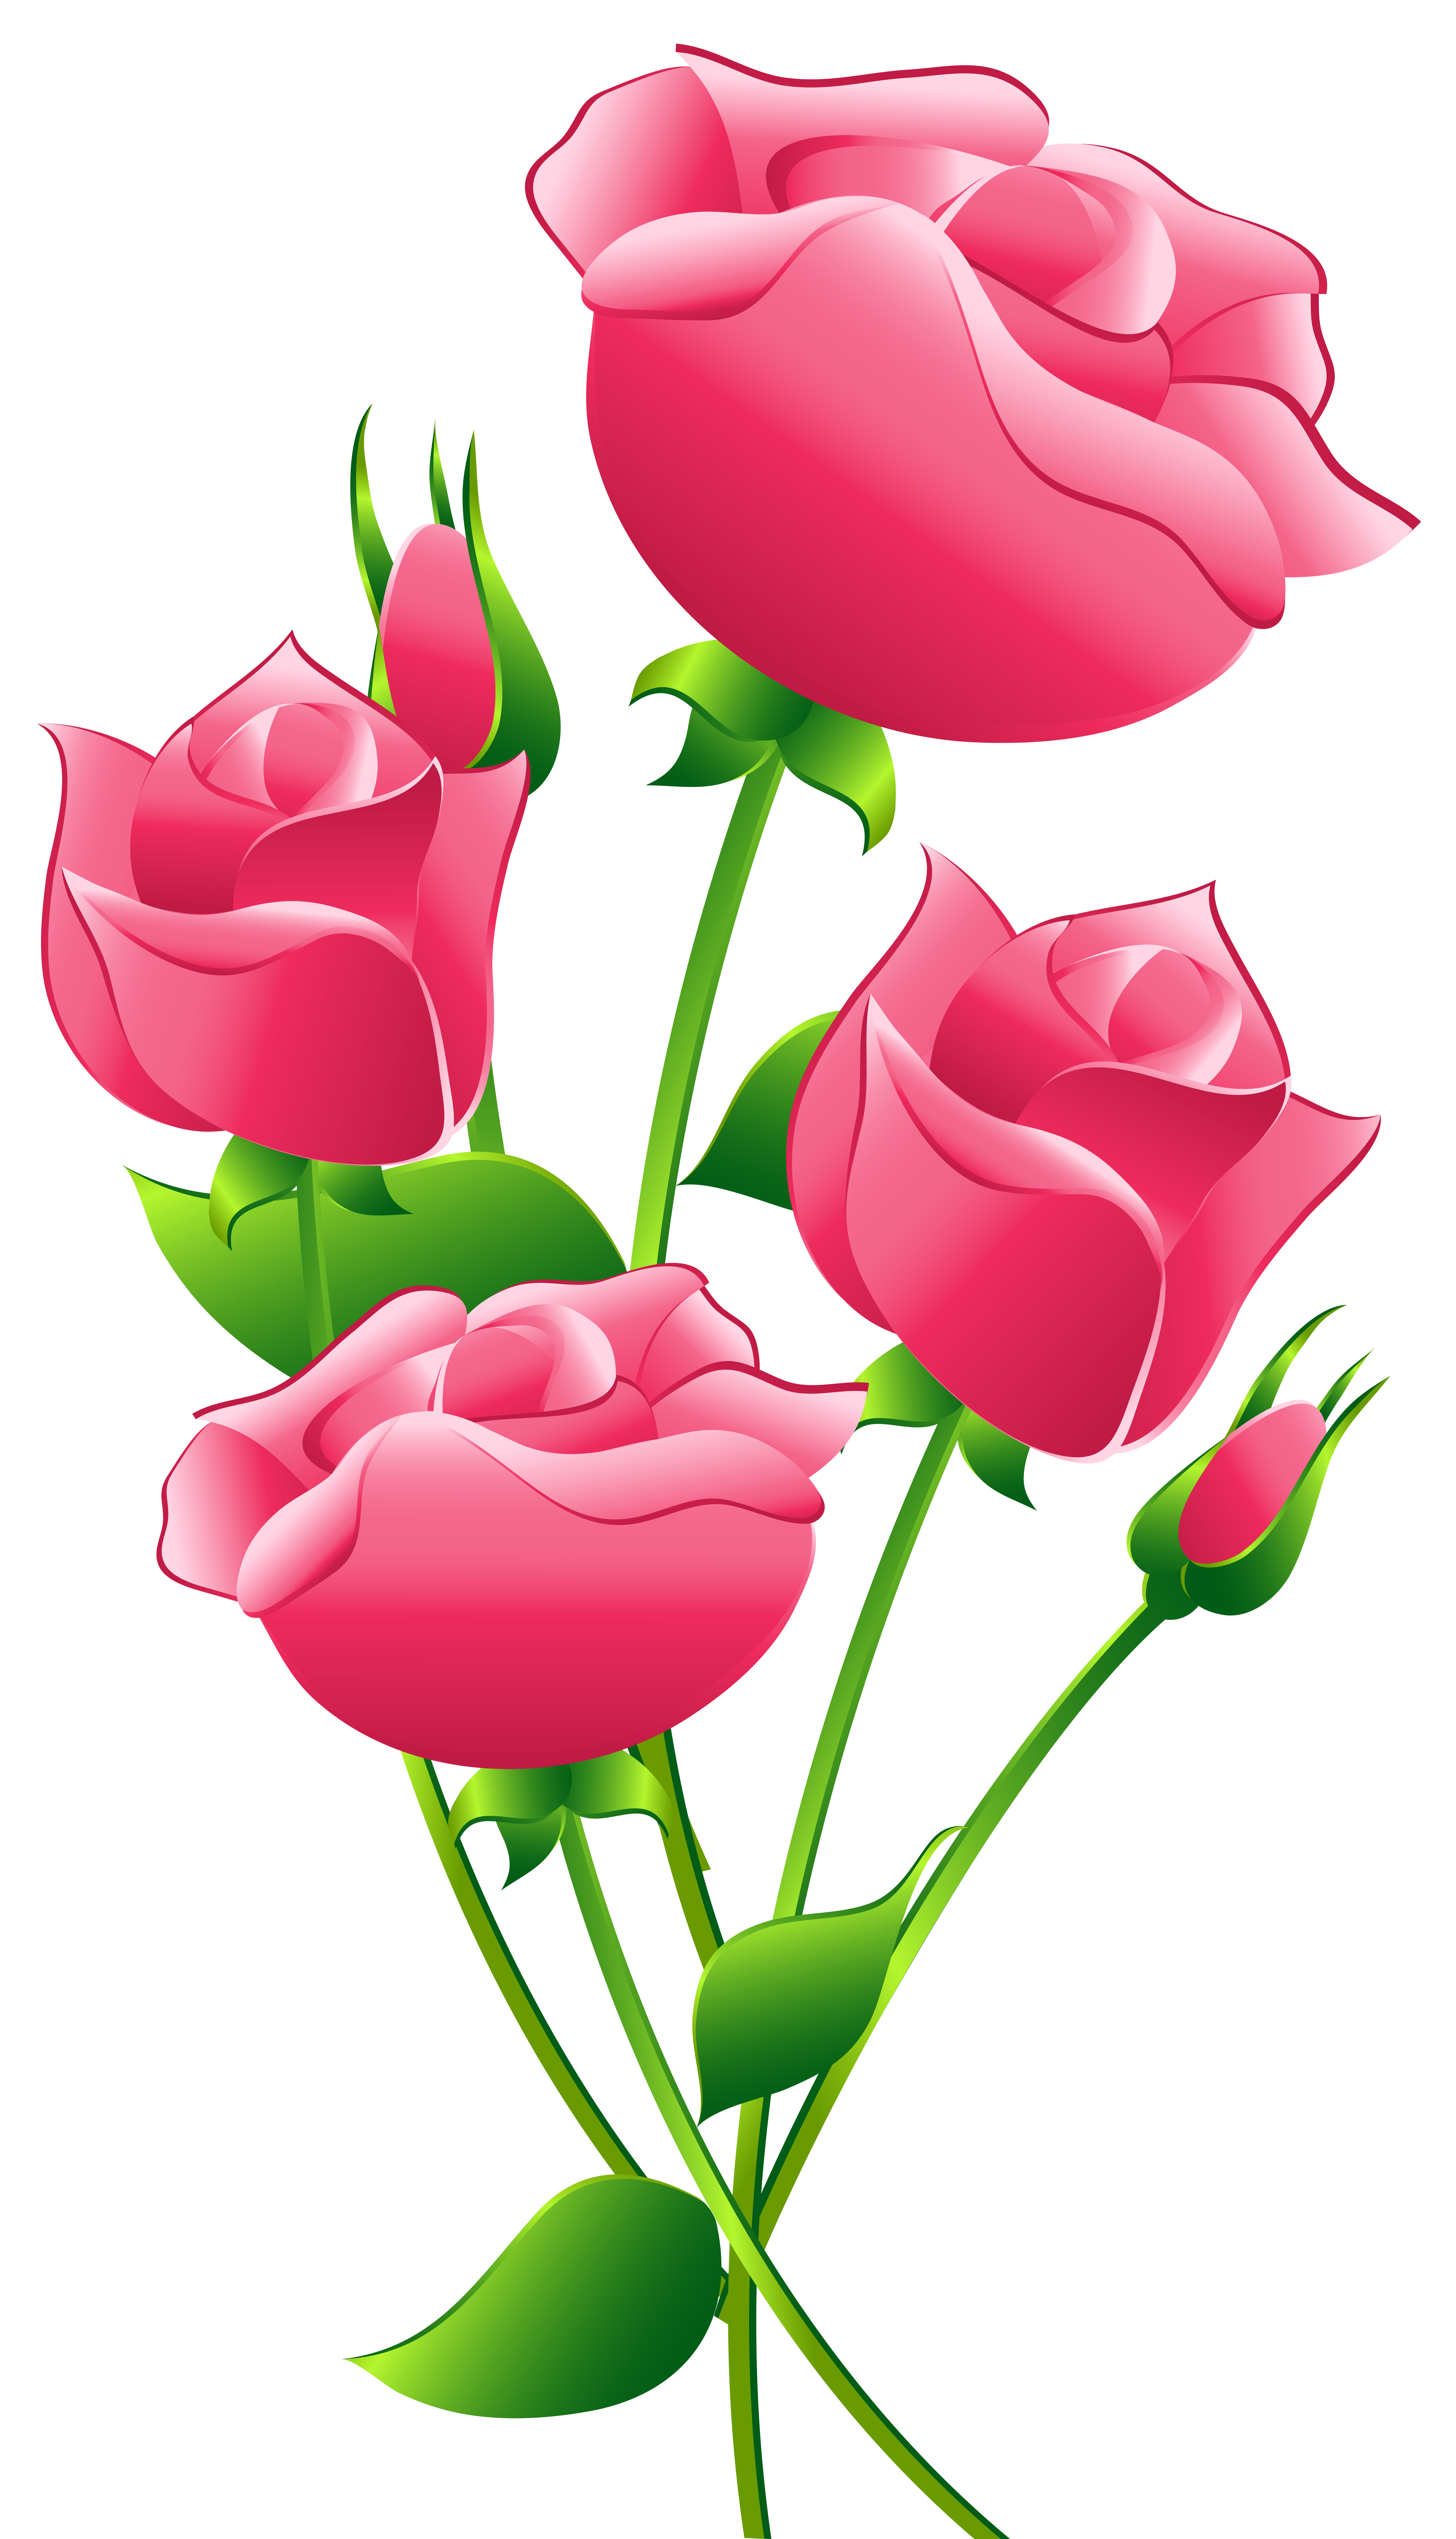 5434x9473 Image Of Clip Art Red Rose 2 Red Roses Clip Art Images Free